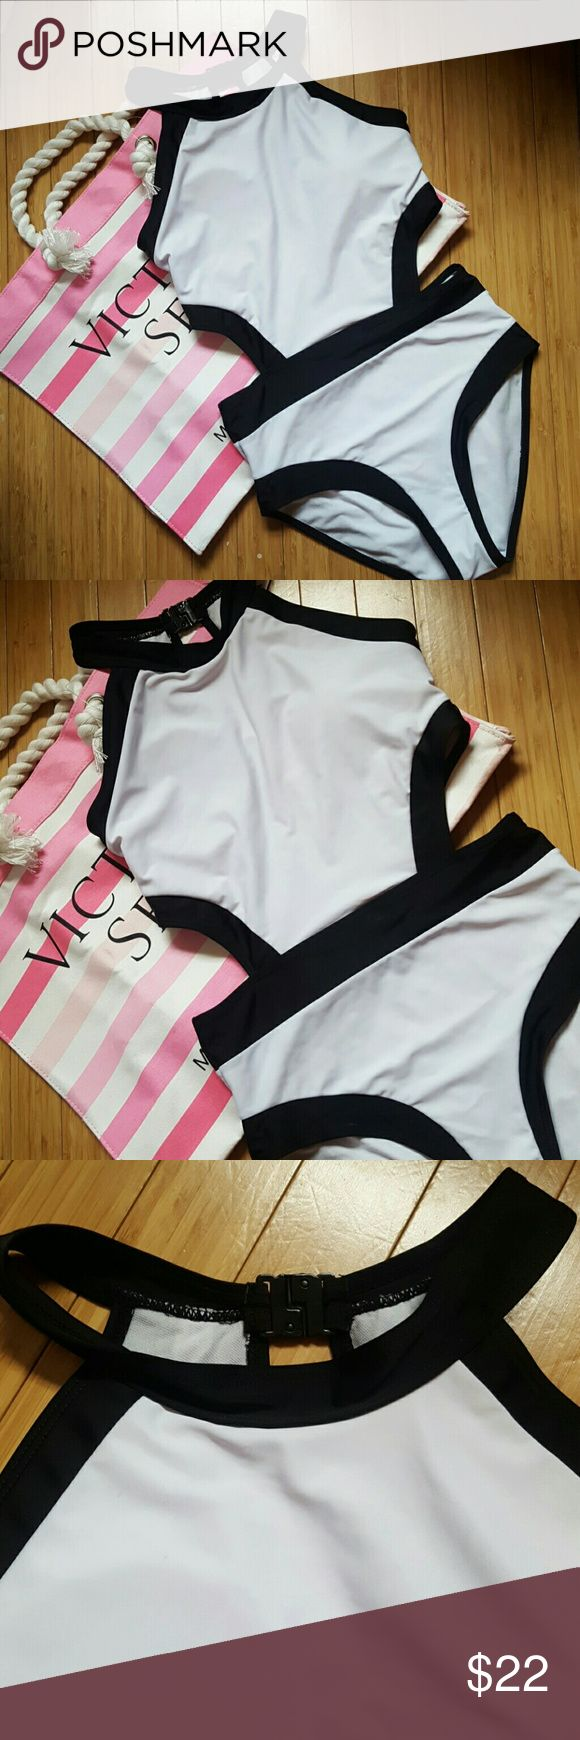 Sexy cut out color blocked swimsuit Halter style one piece swimsuit features side cut outs. Hook Snap back enclosure. Open key hole style back. Flattering white and black color blocked design. Fully lined. Bust has thin molded cups which are removable. Light stretch. Tag is labeled large but please read measurements! Fits more like a small/medium.   Waist 13 inches across. Bust measures 15 inches across. Neck to crotch 26 inches. Thigh opening 9 1/2 inches.  Sides are not sewn perfectly…